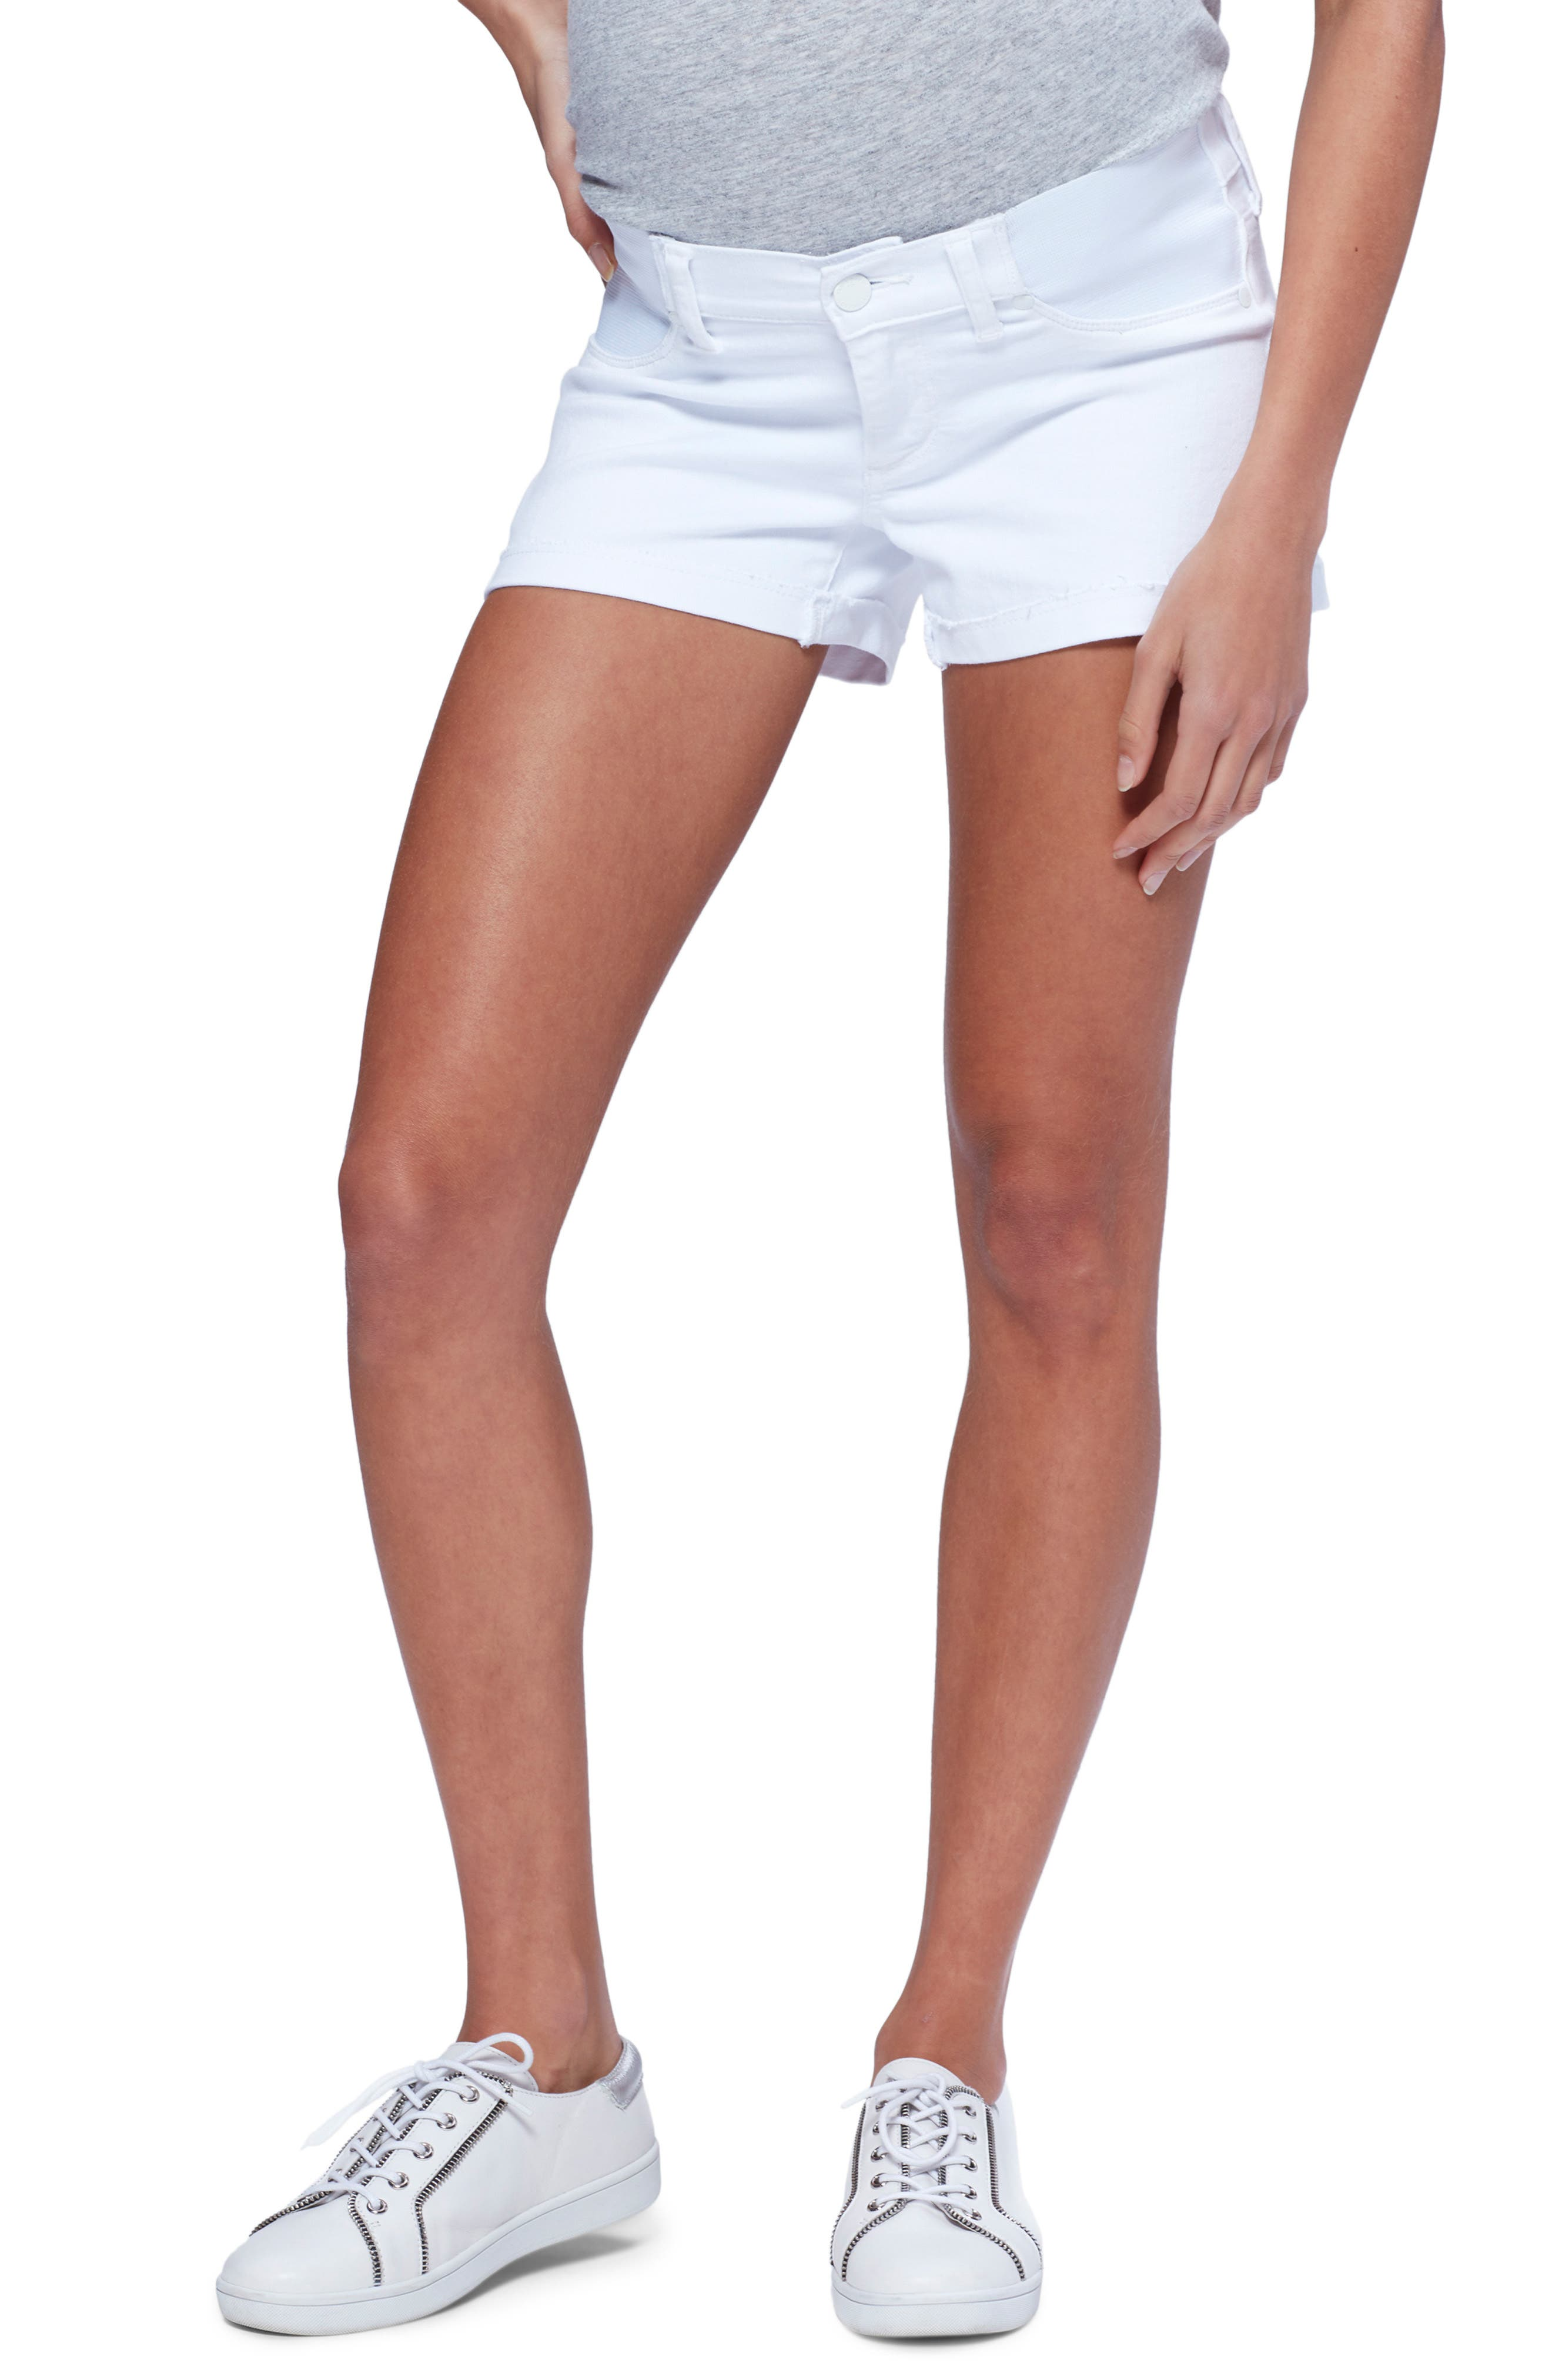 Women's Paige Jimmy Jimmy Maternity Shorts